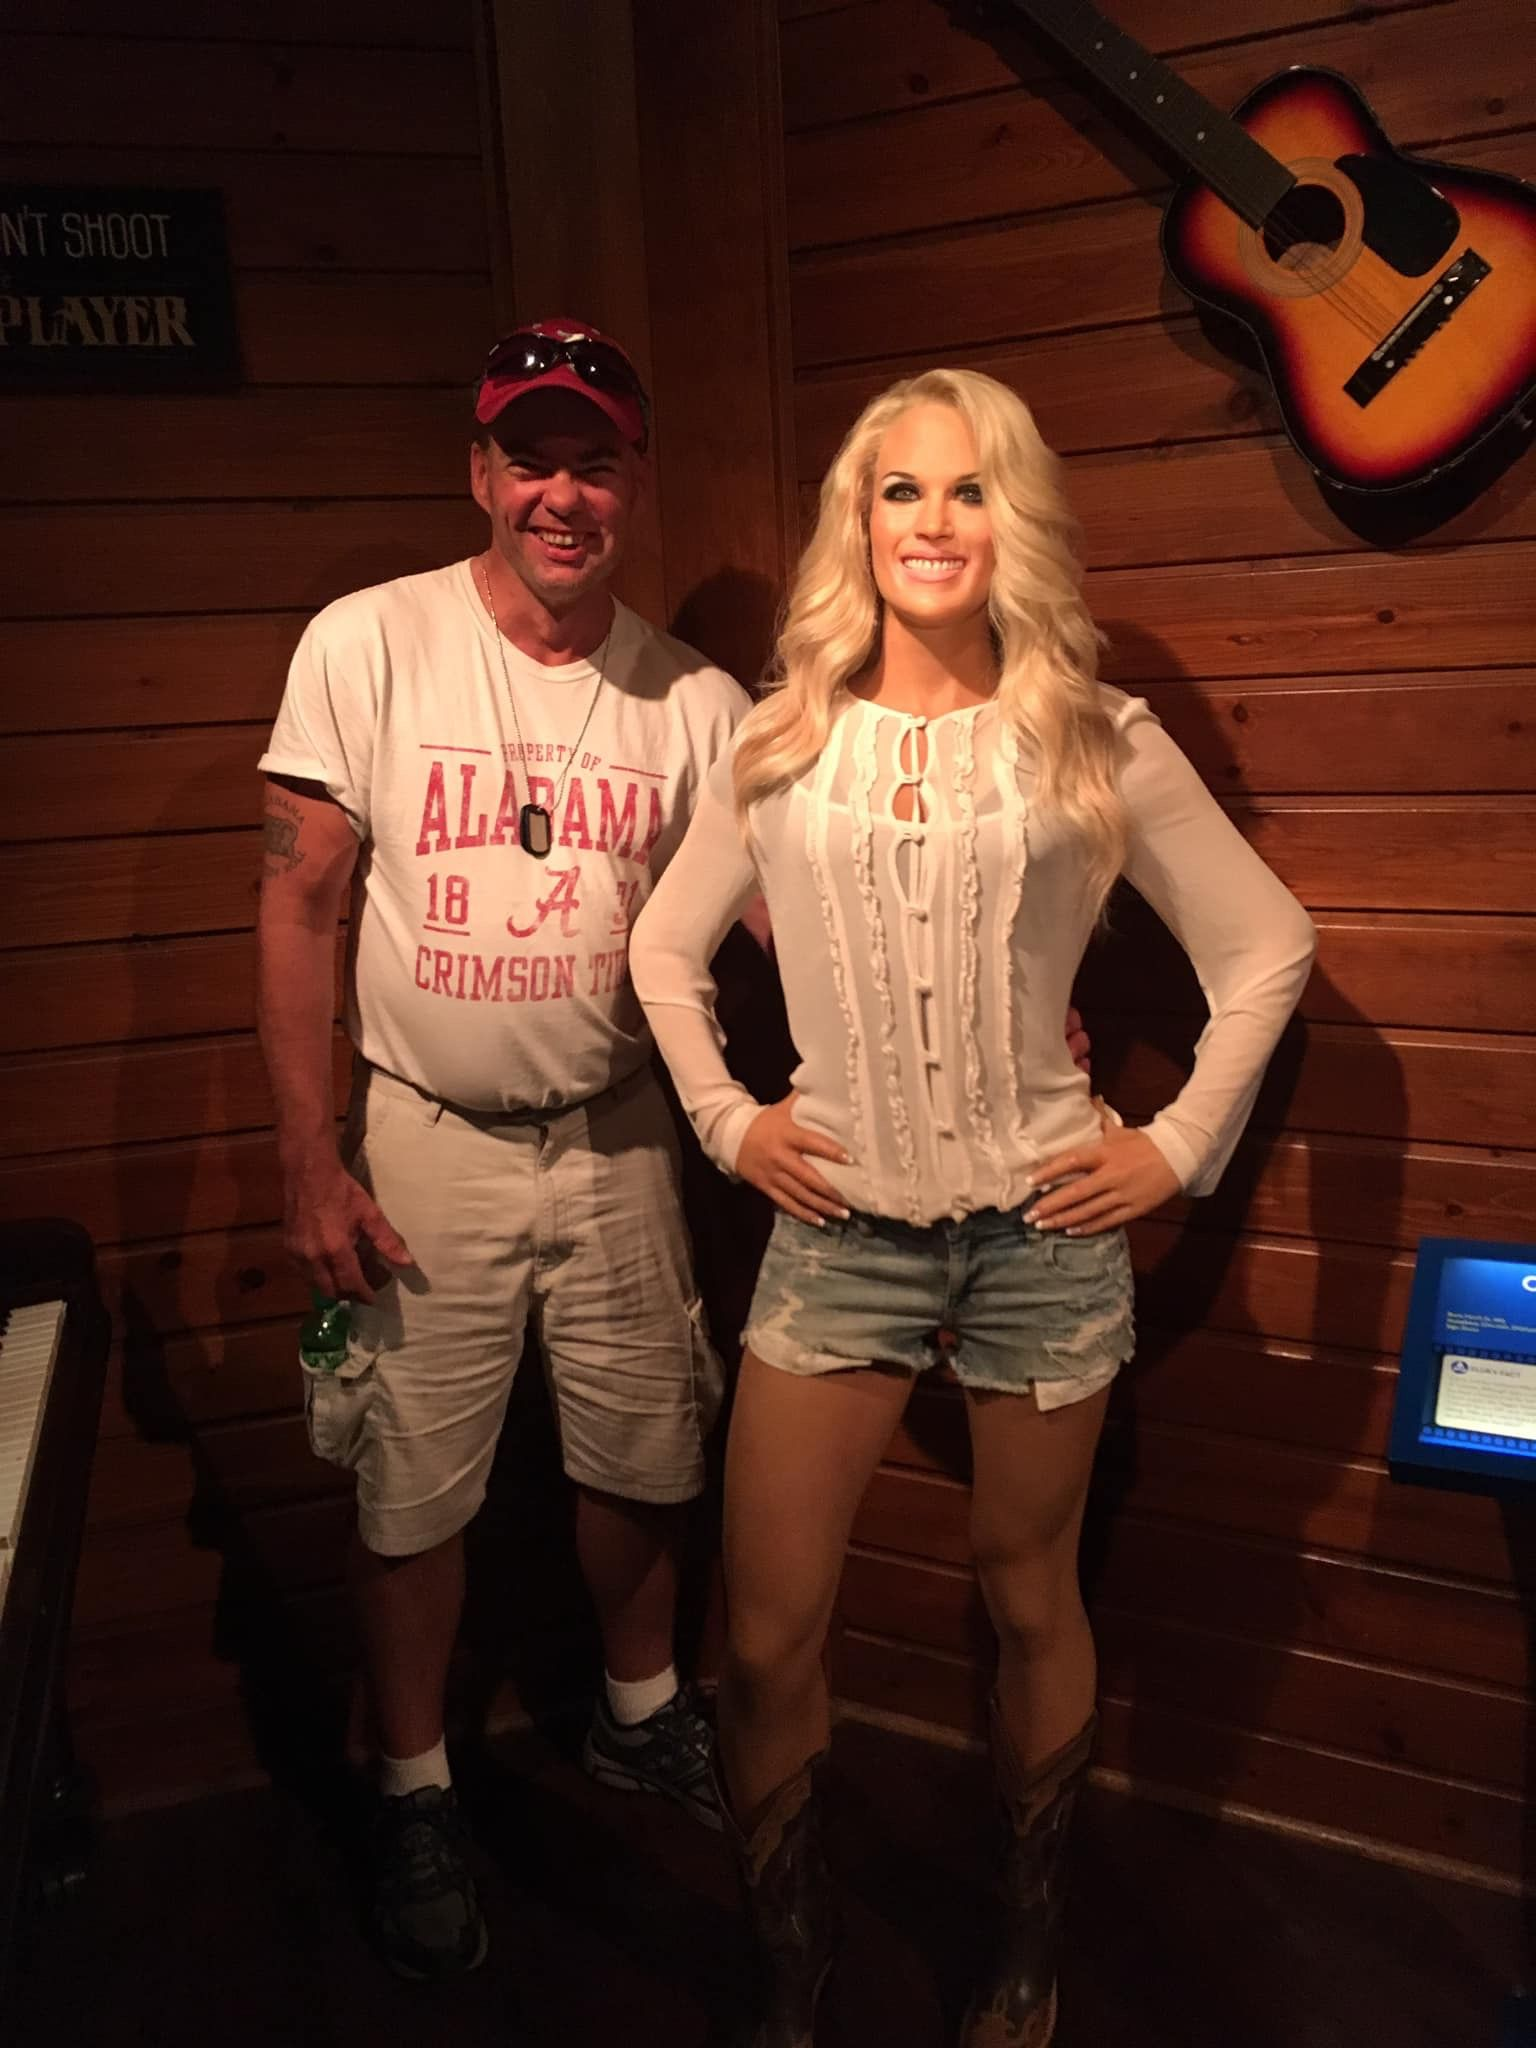 At the Hollywood Wax Museum near the Quality Inn Branson on the Strip